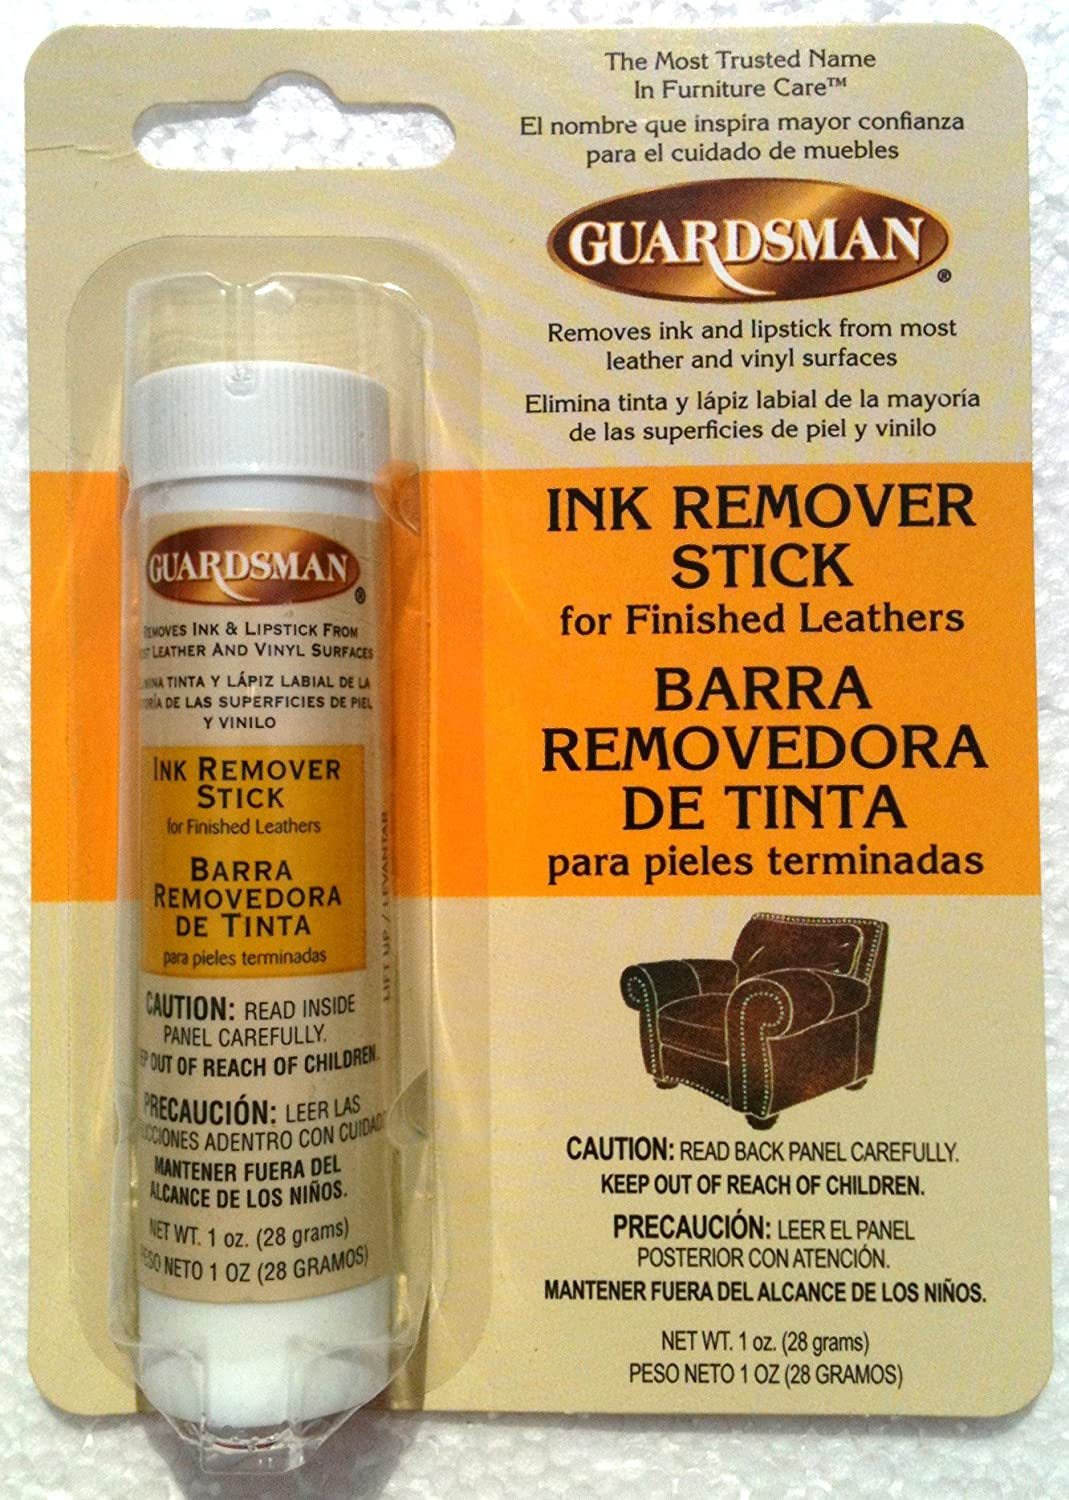 La Oz Y Muebles - Guardsman Finished Leather Vinyl Cleaner Ink Remover Stick 1 Oz [mjhdah]https://www.bigmatmm.es/img/cms/Banner-Delta-plus—Bigmat-Miguel-Mun%CC%83oz-min.jpg